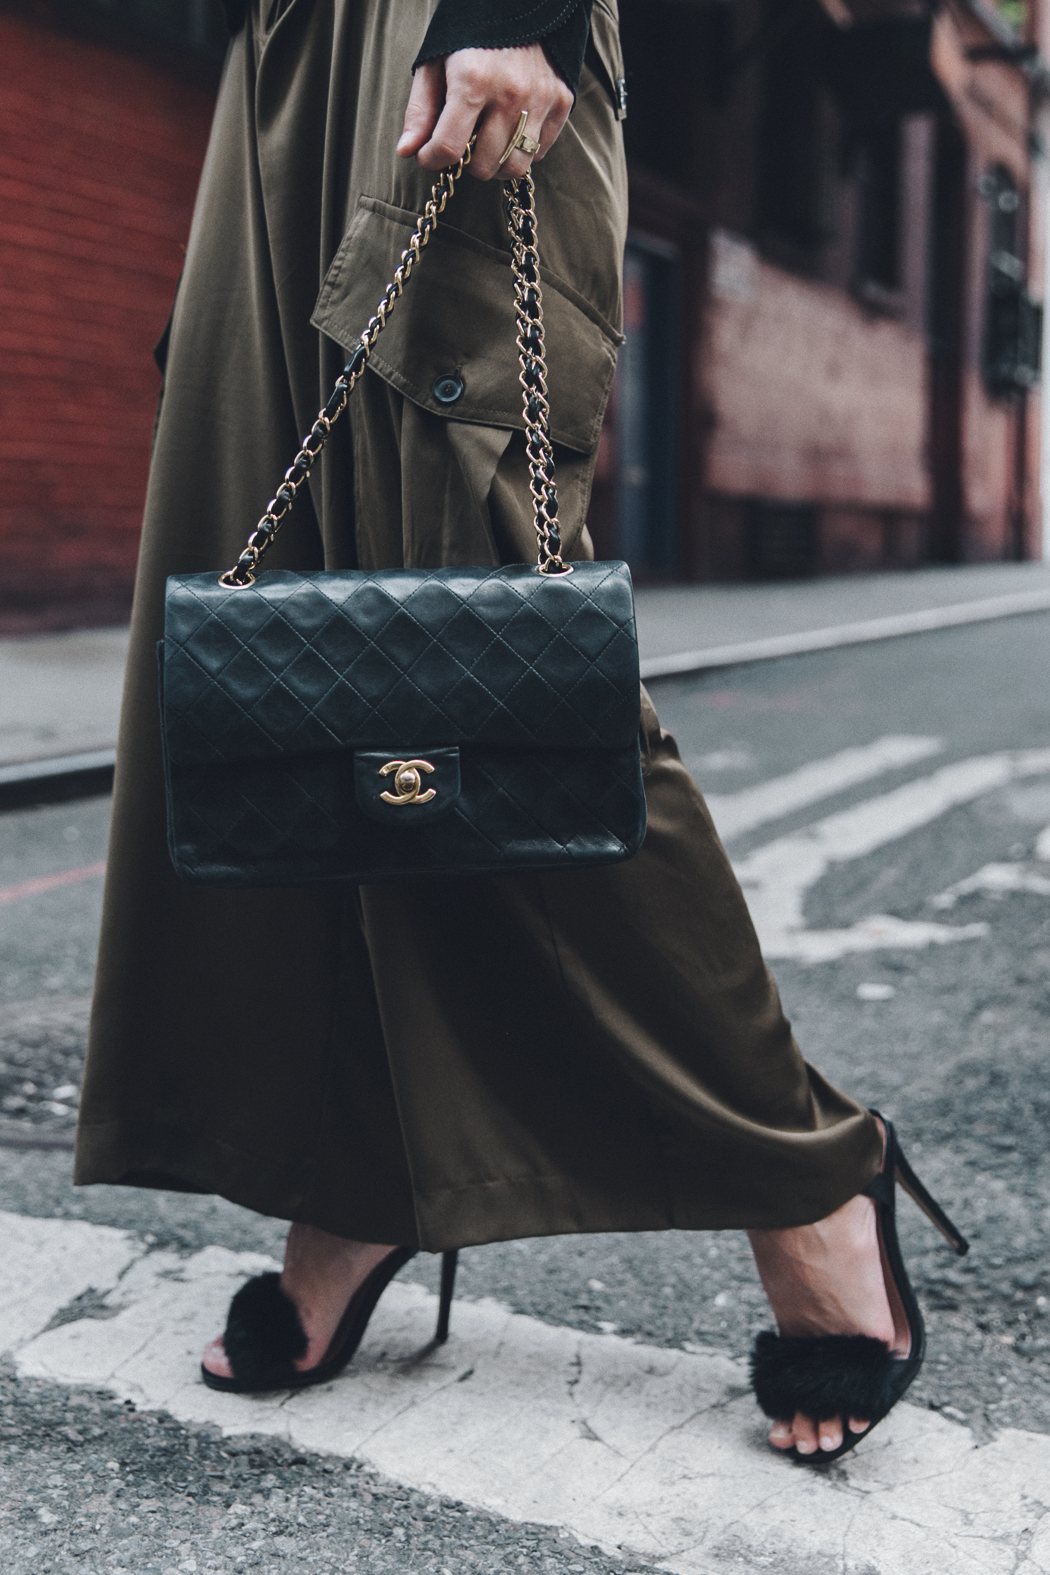 Khaki_Trousers-Sandro_Suede_Jacket-BNKR_Sandals-Fur_Sandals-Chanel_Bag-Outfit-Street_Style-NYC-22